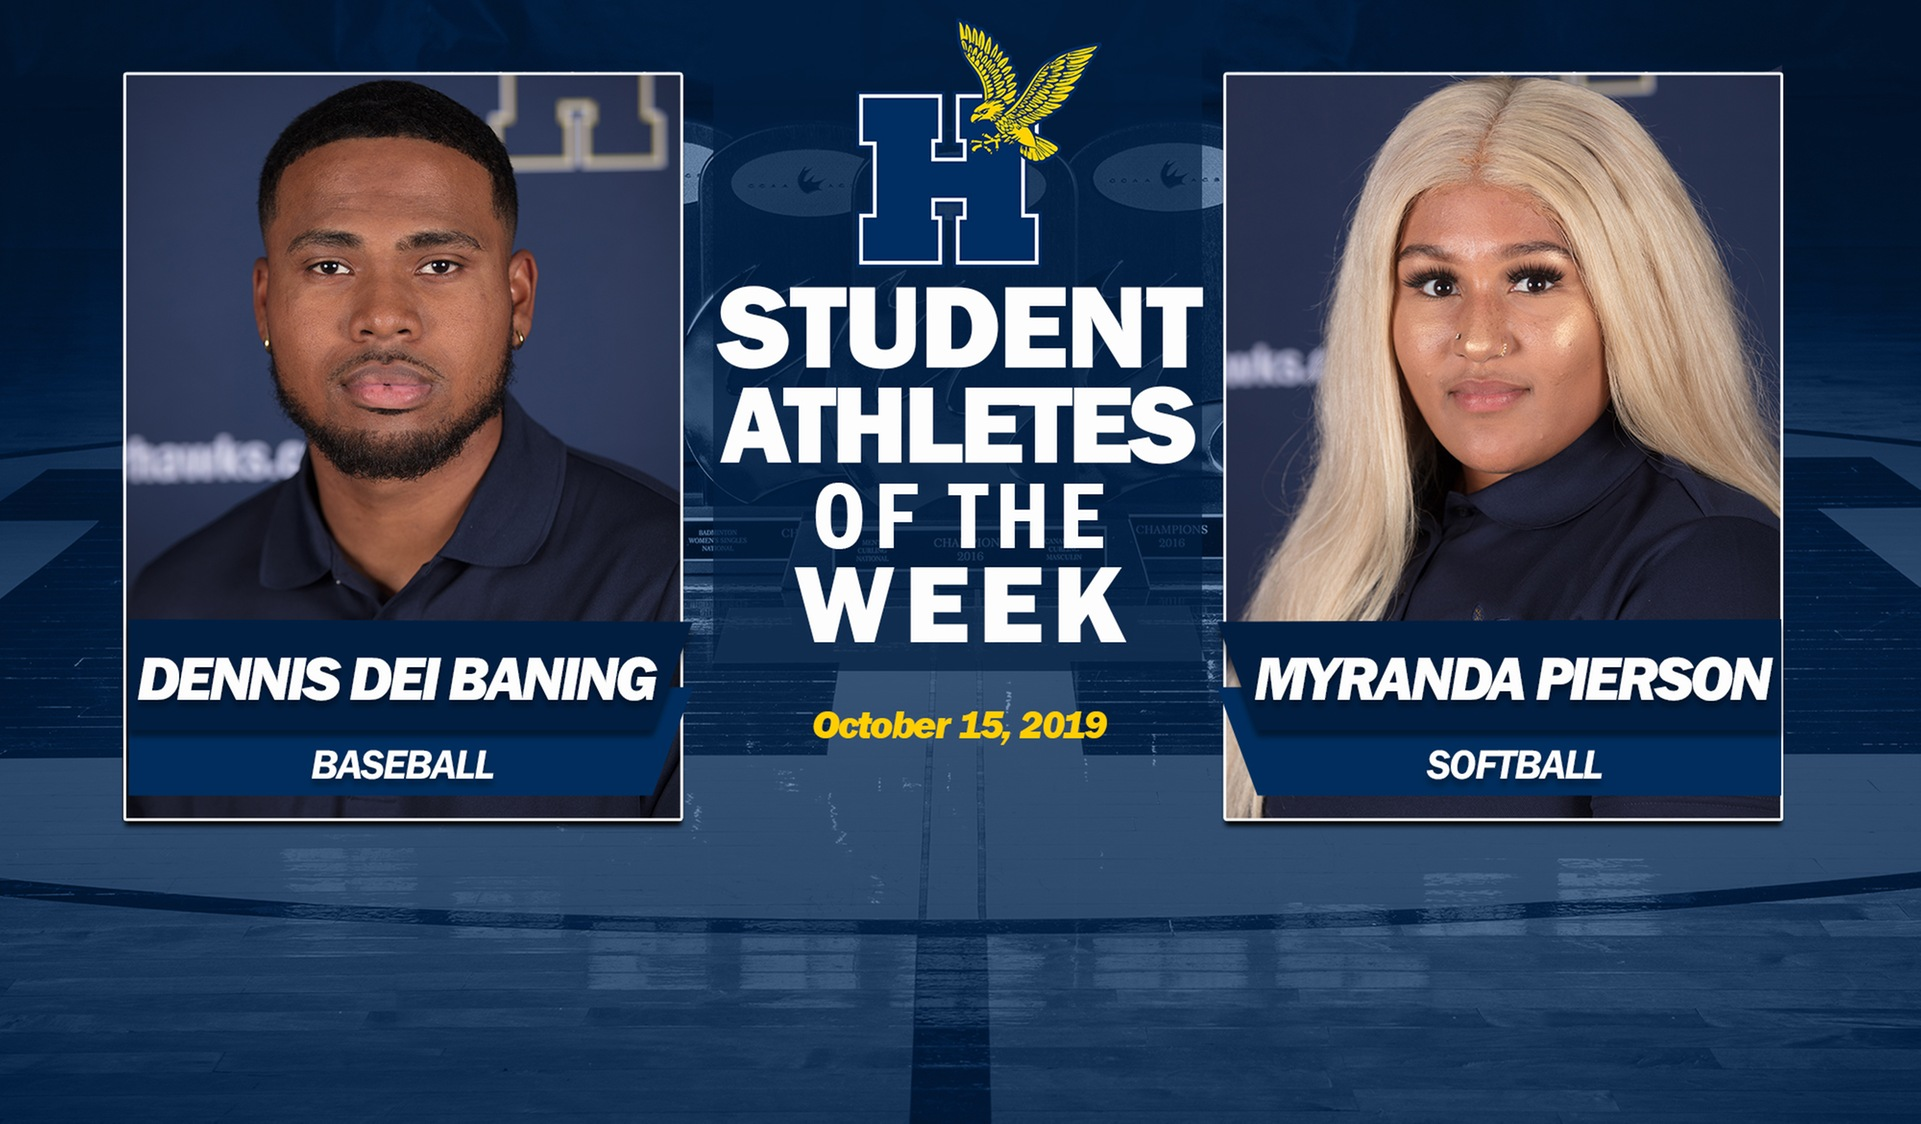 Dei Baning, Pierson Earn Humber Student-Athlete of the Week Honours